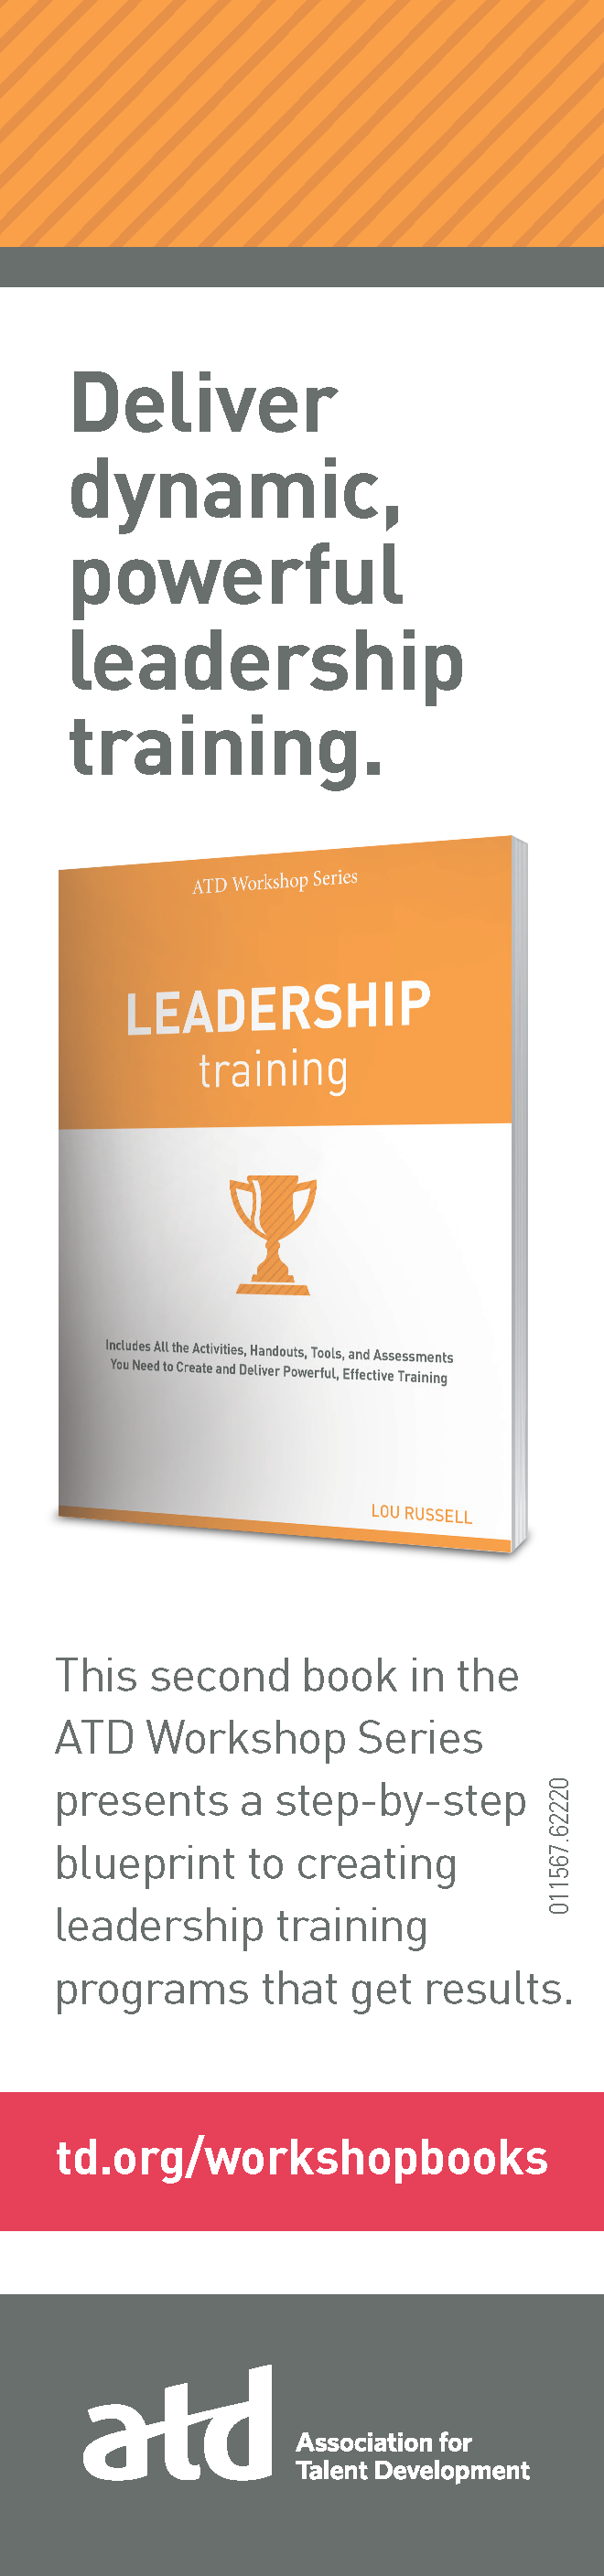 Leadership training by lou russell this second book in the atd whether you are developing a first rate leadership development program from scratch or adding to an existing workshop let leadership expert and master malvernweather Choice Image